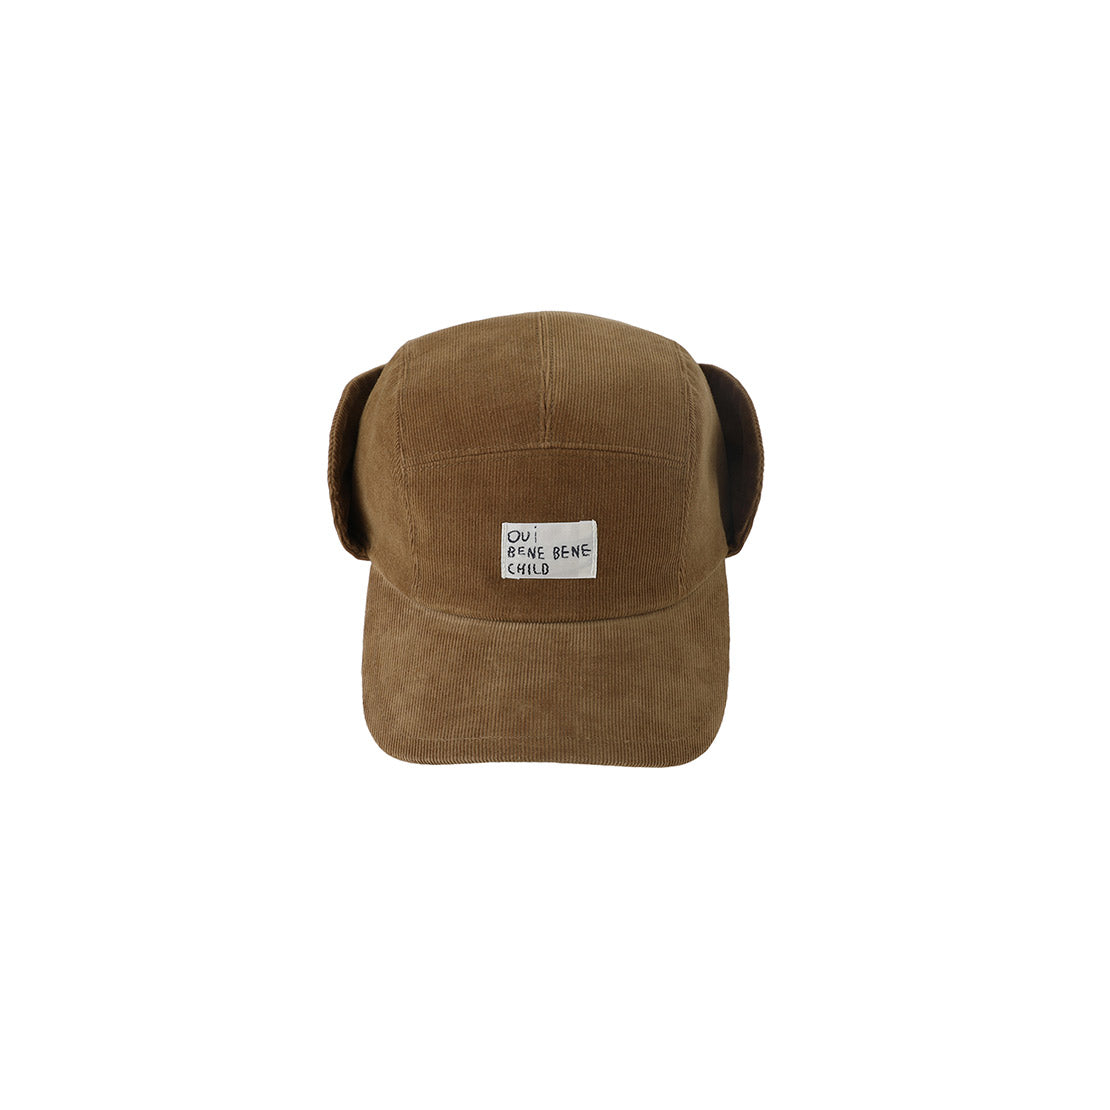 Bene Bene Brown Corduroy Ear Cap